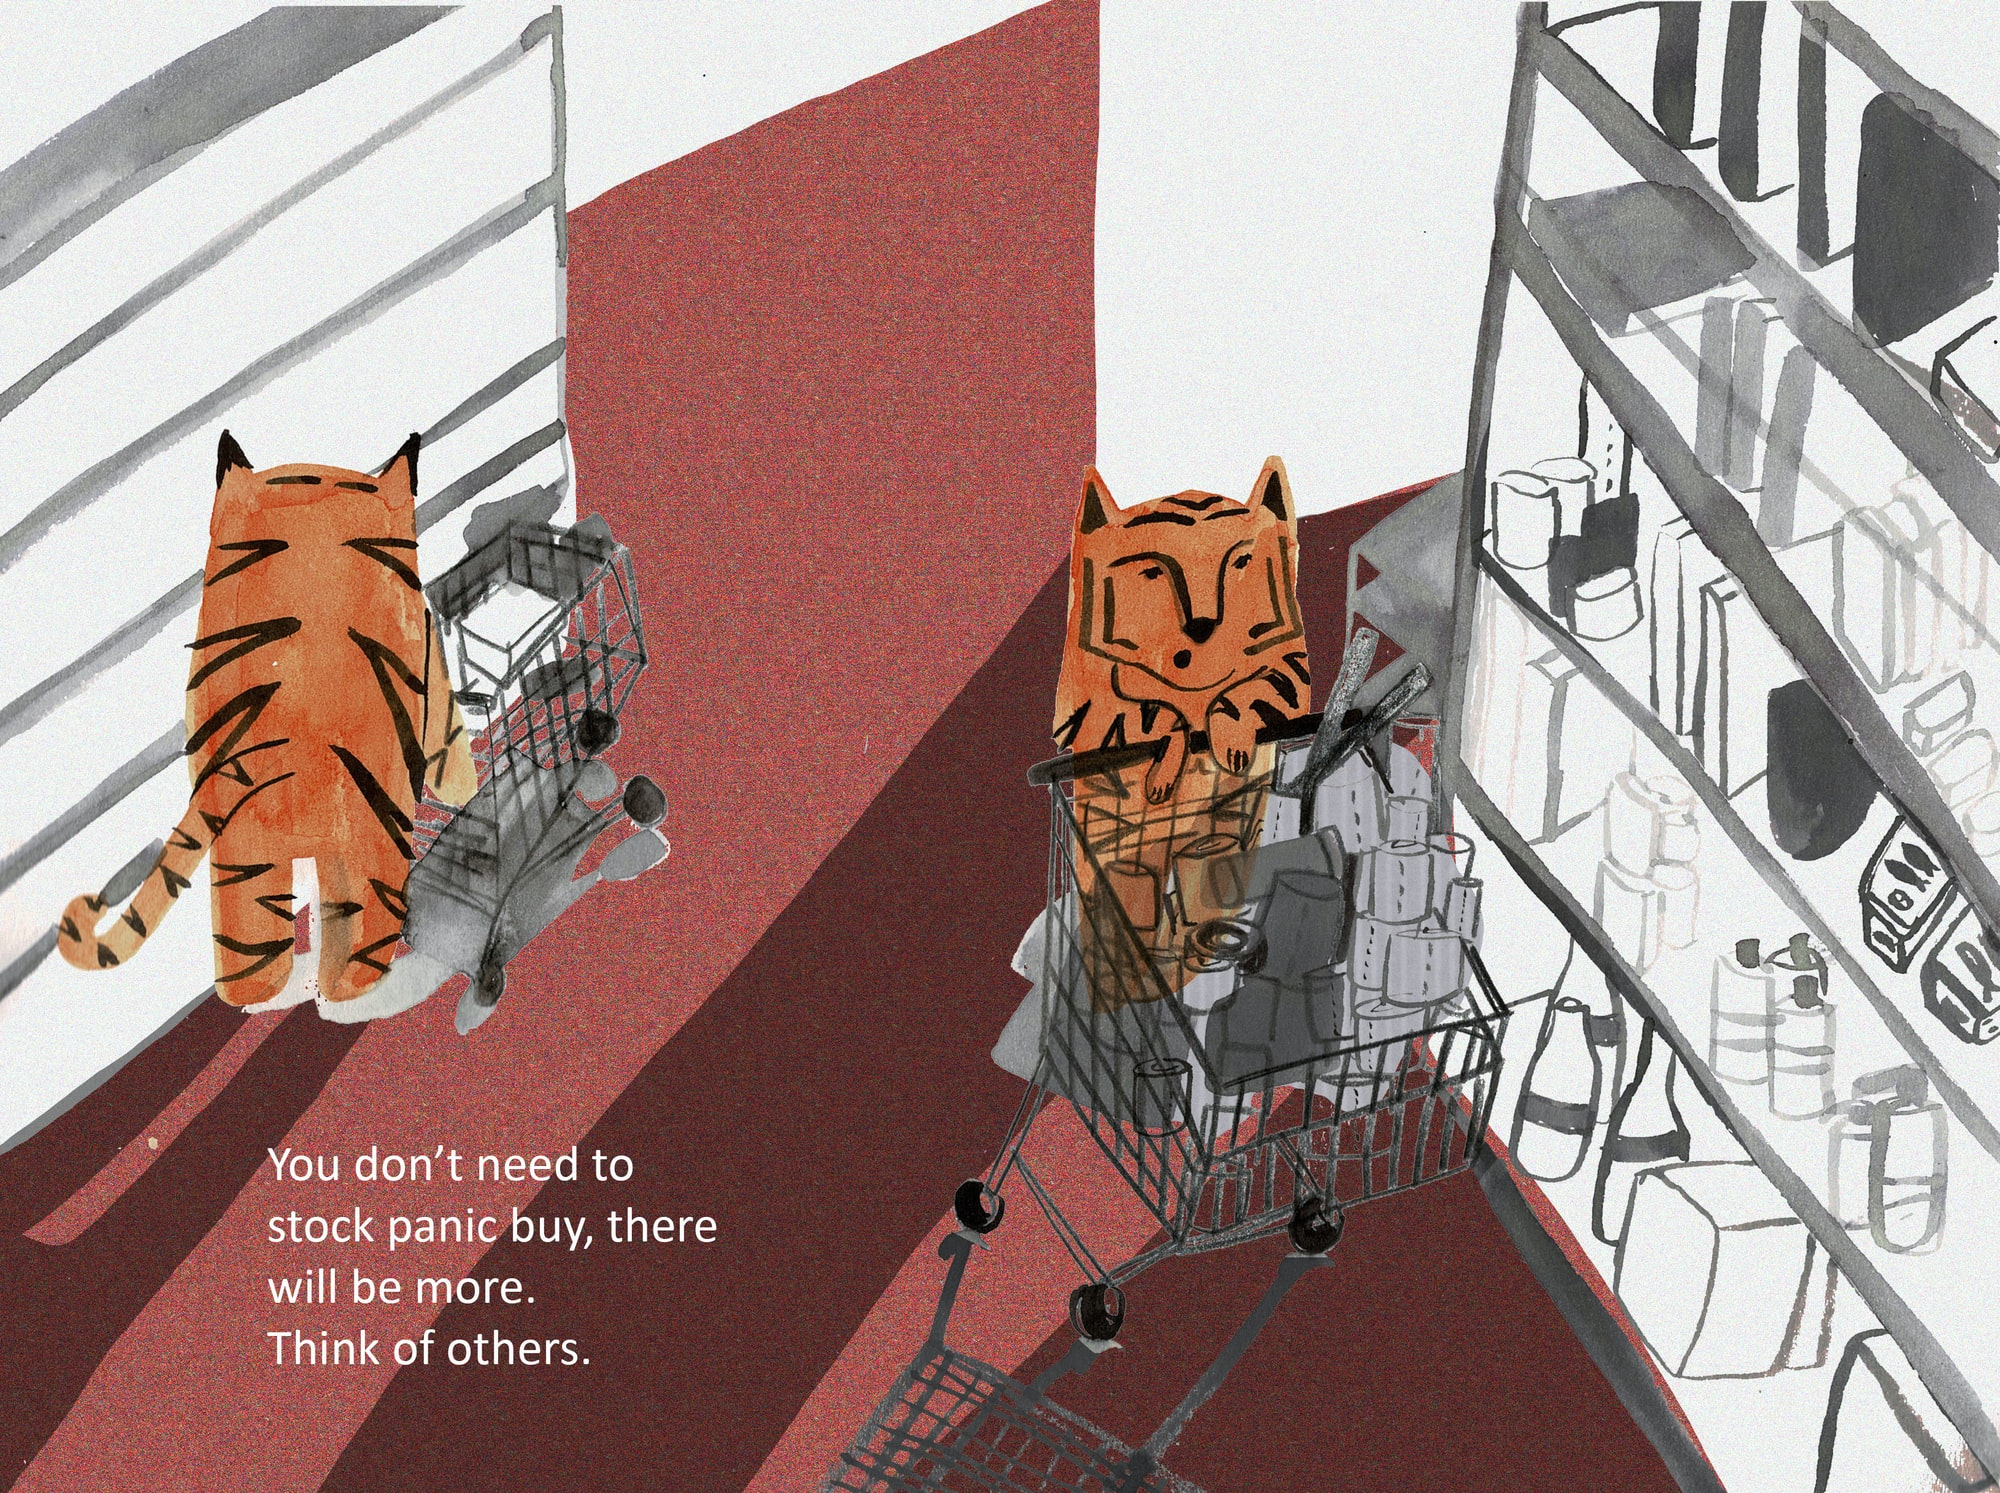 An illustration addressing people panic buying. Using tigers to be more humorous. A simple message to ask people to think of others in the time of chaos. Painted by hand with Ink, then edited digitally. Image created by Lydia Christine. Submitted for United Nations Global Call Out To Creatives - help stop the spread of COVID-19.